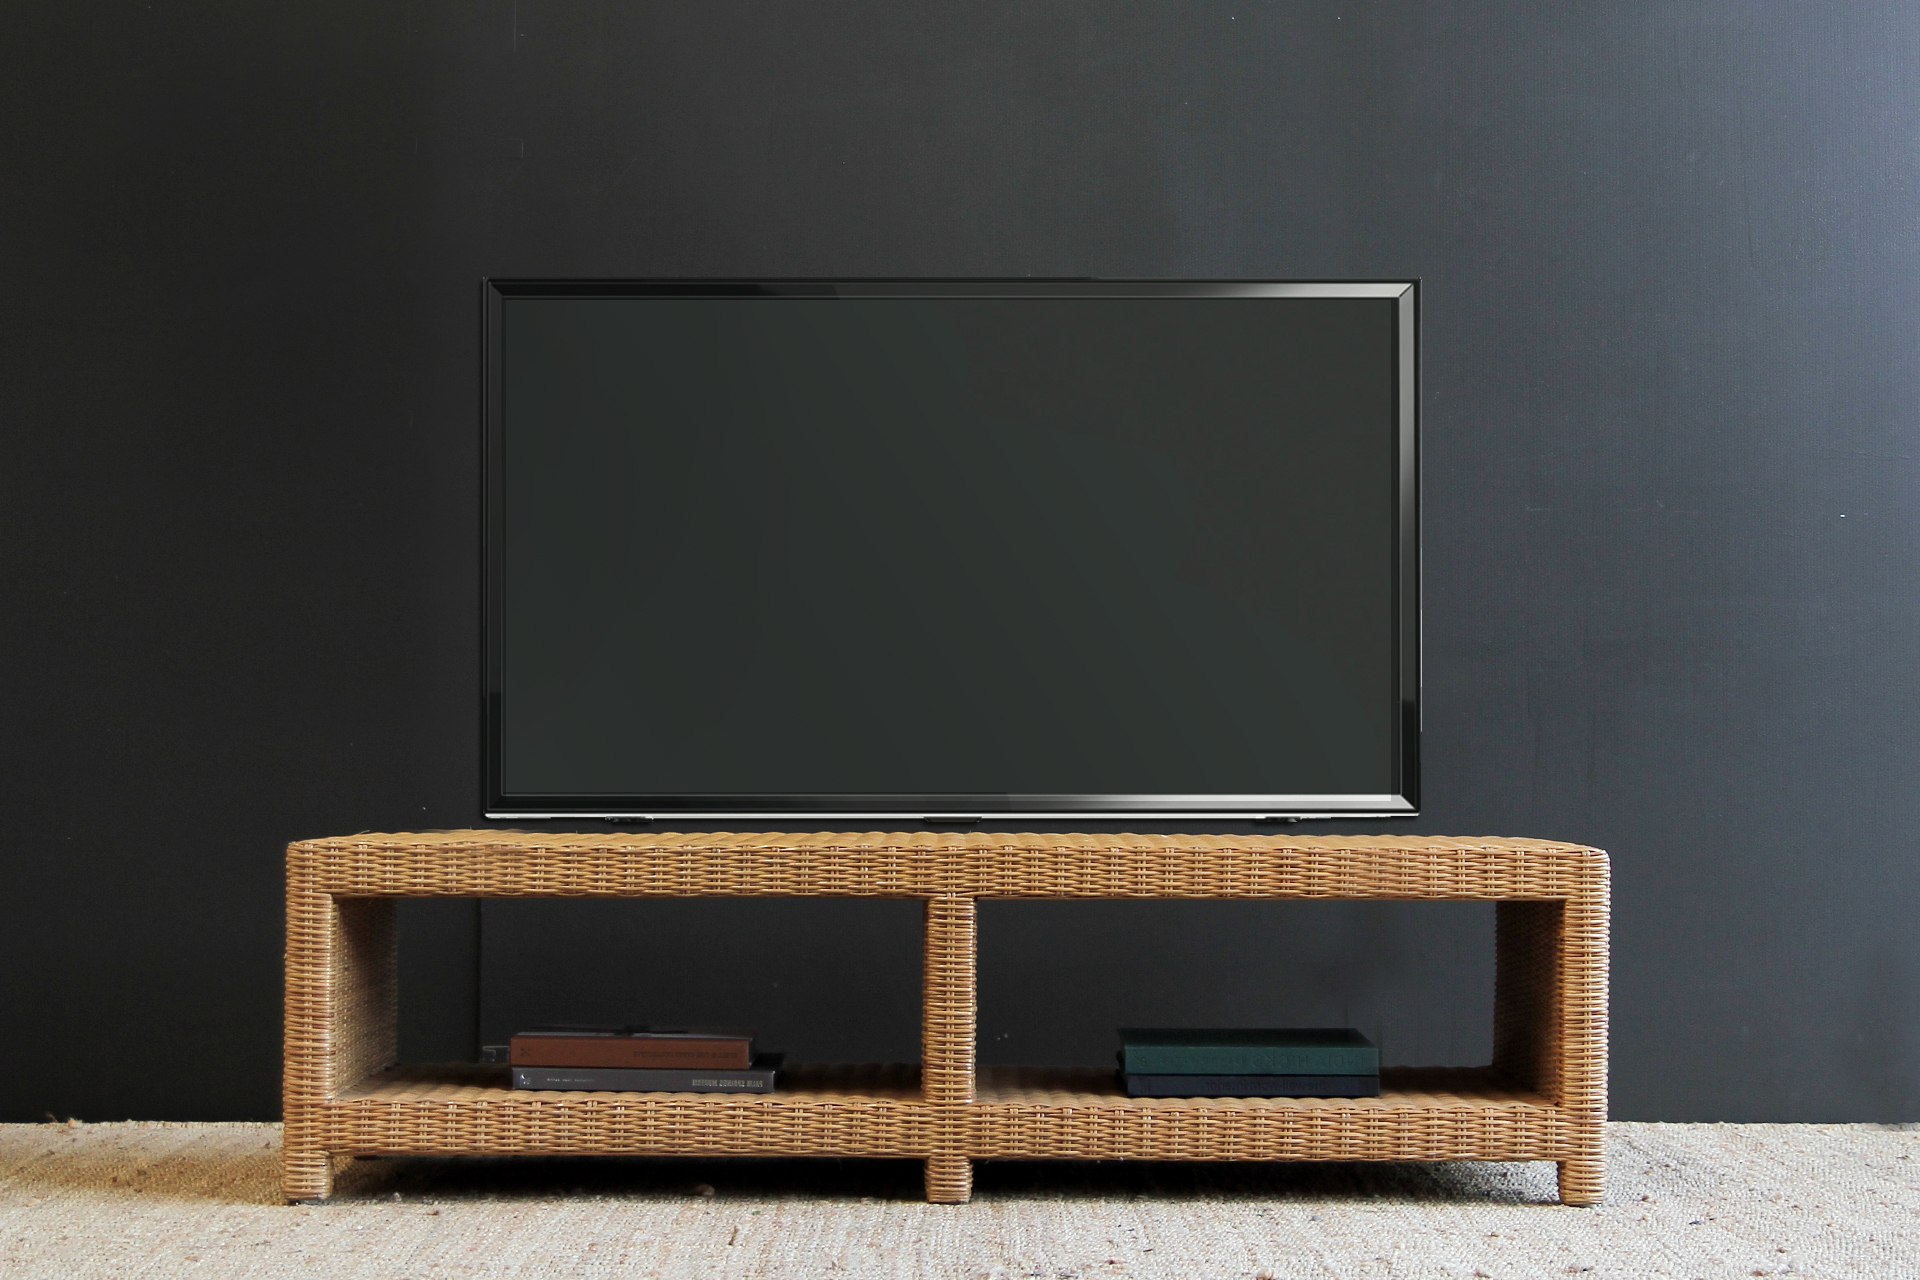 Tampa Low Line Tv Console | Naturally Cane Rattan And Wicker Furniture Regarding Natural Cane Media Console Tables (View 3 of 20)